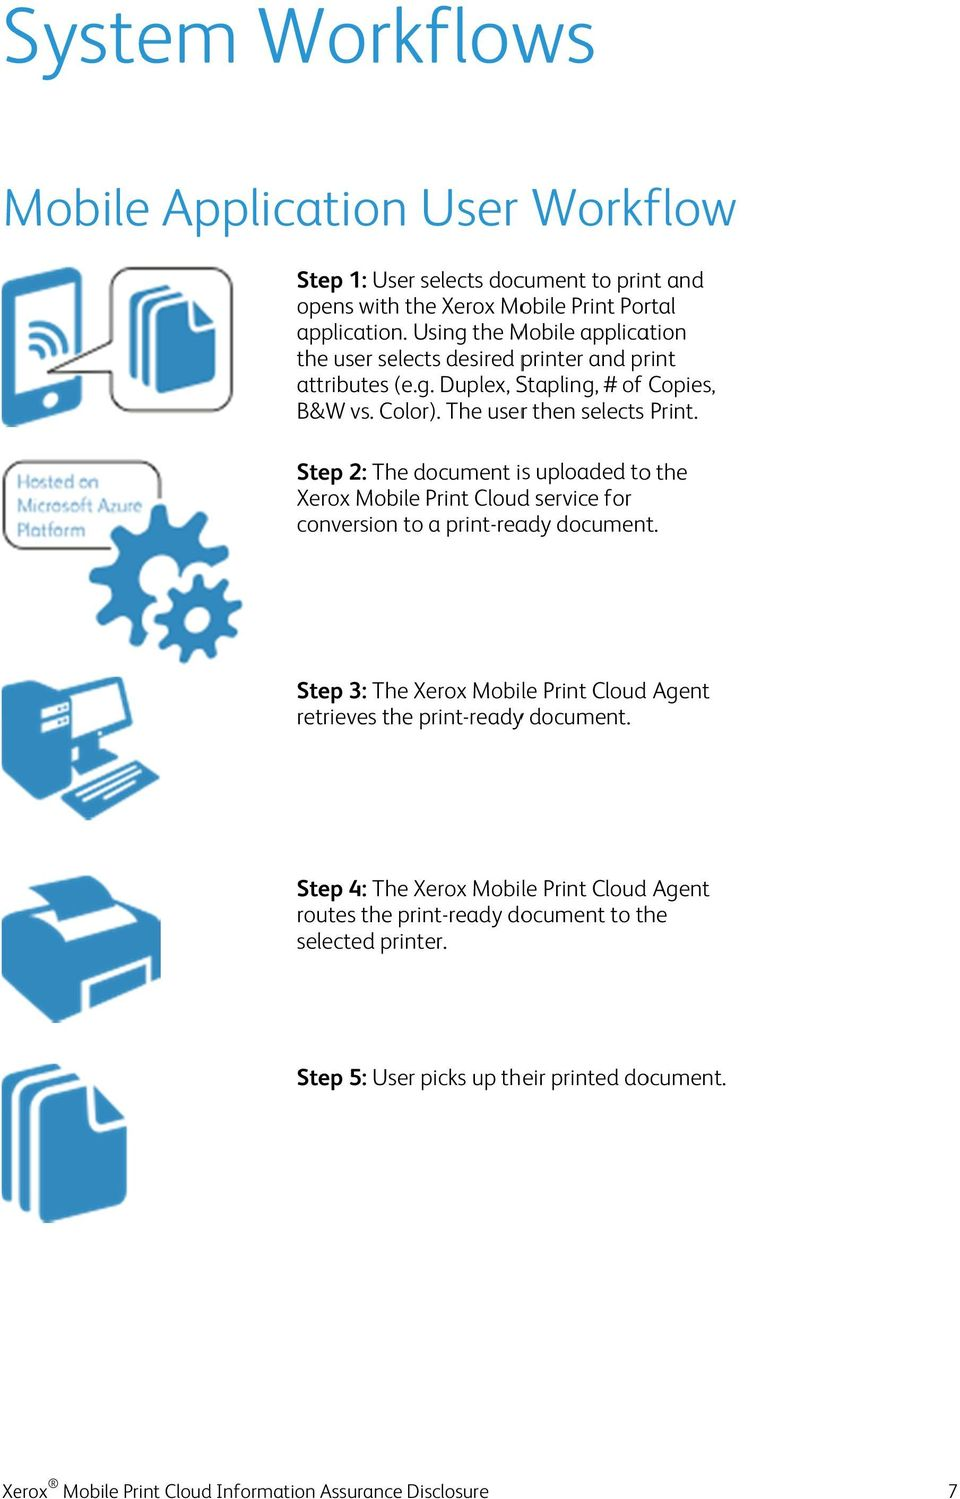 Step 2: The document is uploaded to the Xerox Mobile Print Cloudd service for conversionn to a print-ready document.